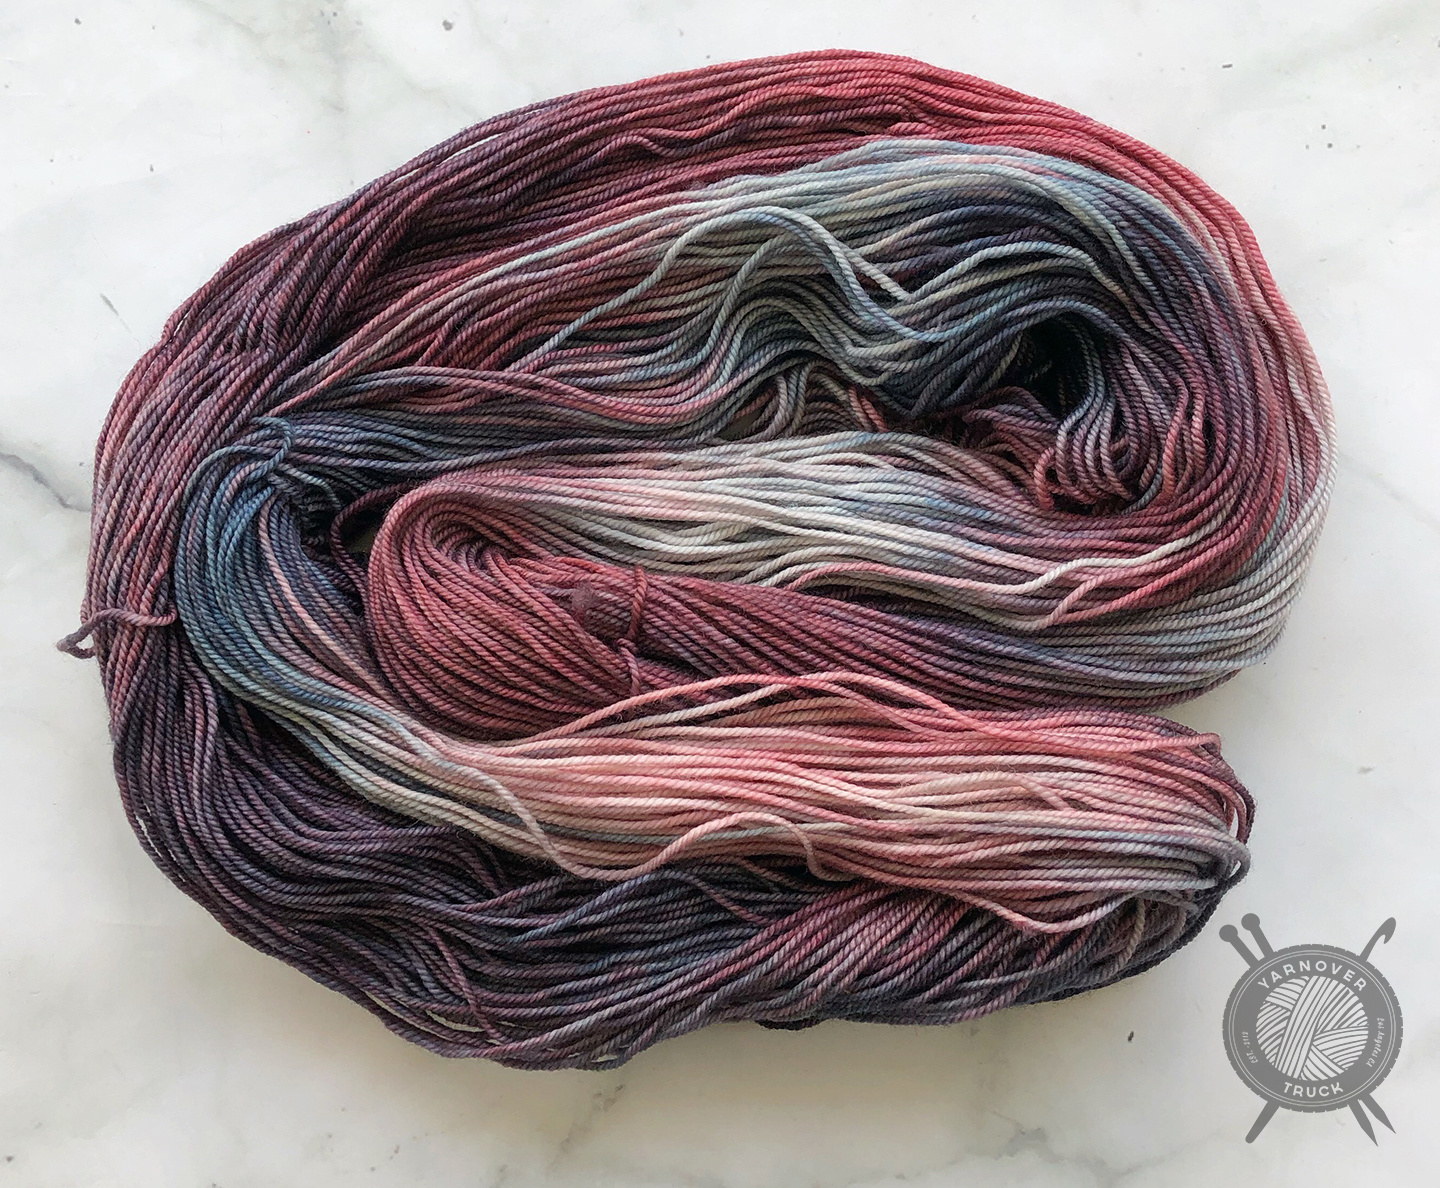 Forbidden Fiber Co. Vampire Queen on Beatitude from Forbidden Fiber Co.